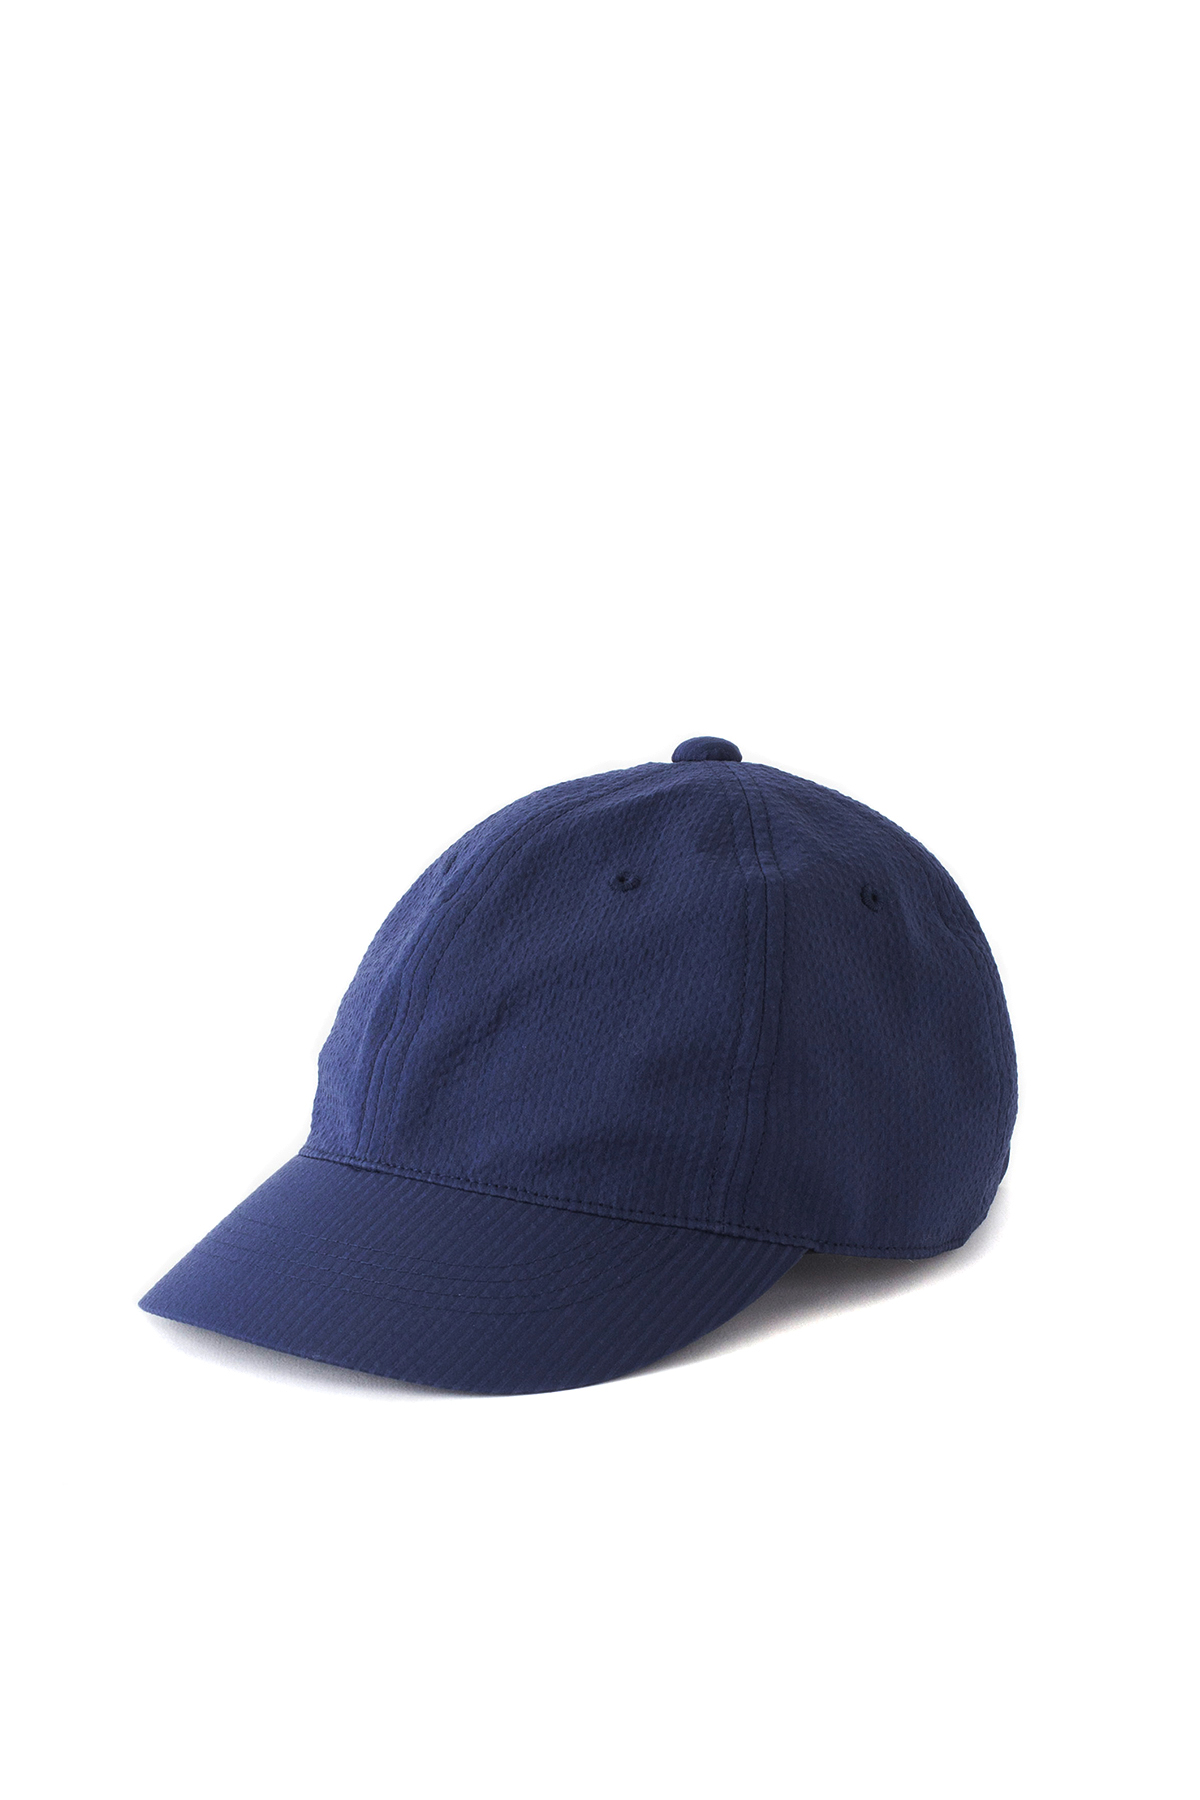 RYU : Seersucker Umpire Cap (Navy)